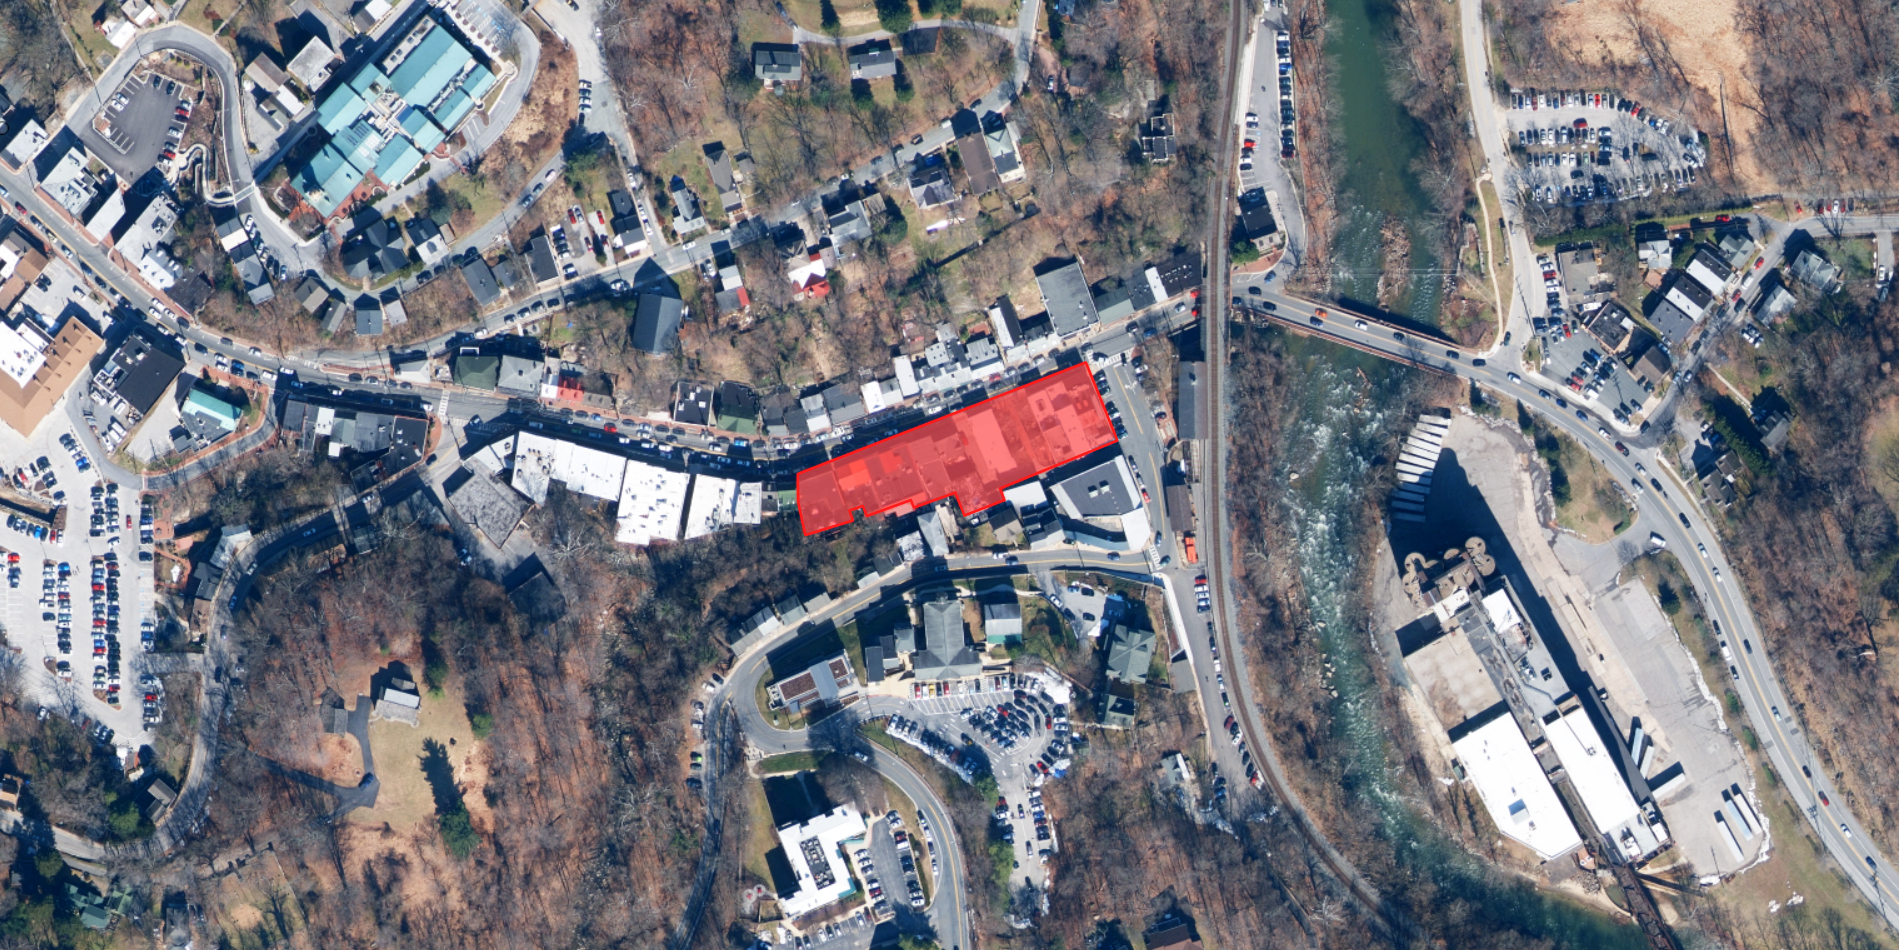 Under the current proposal, these buildings would be erased from the Ellicott City landscape.